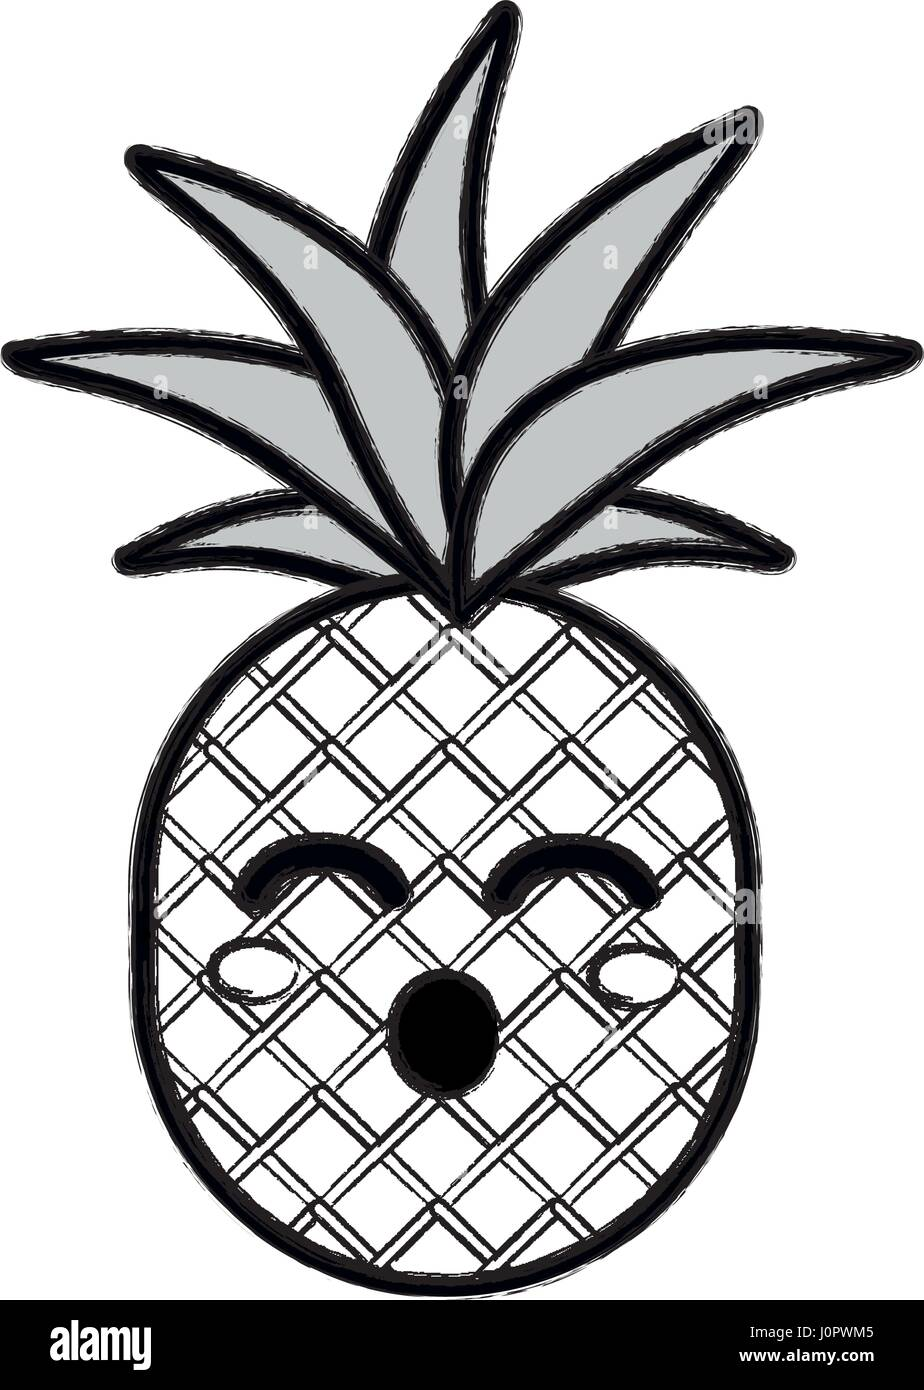 Silhouette Kawaii Cute Funny Pineapple Vegetable Stock